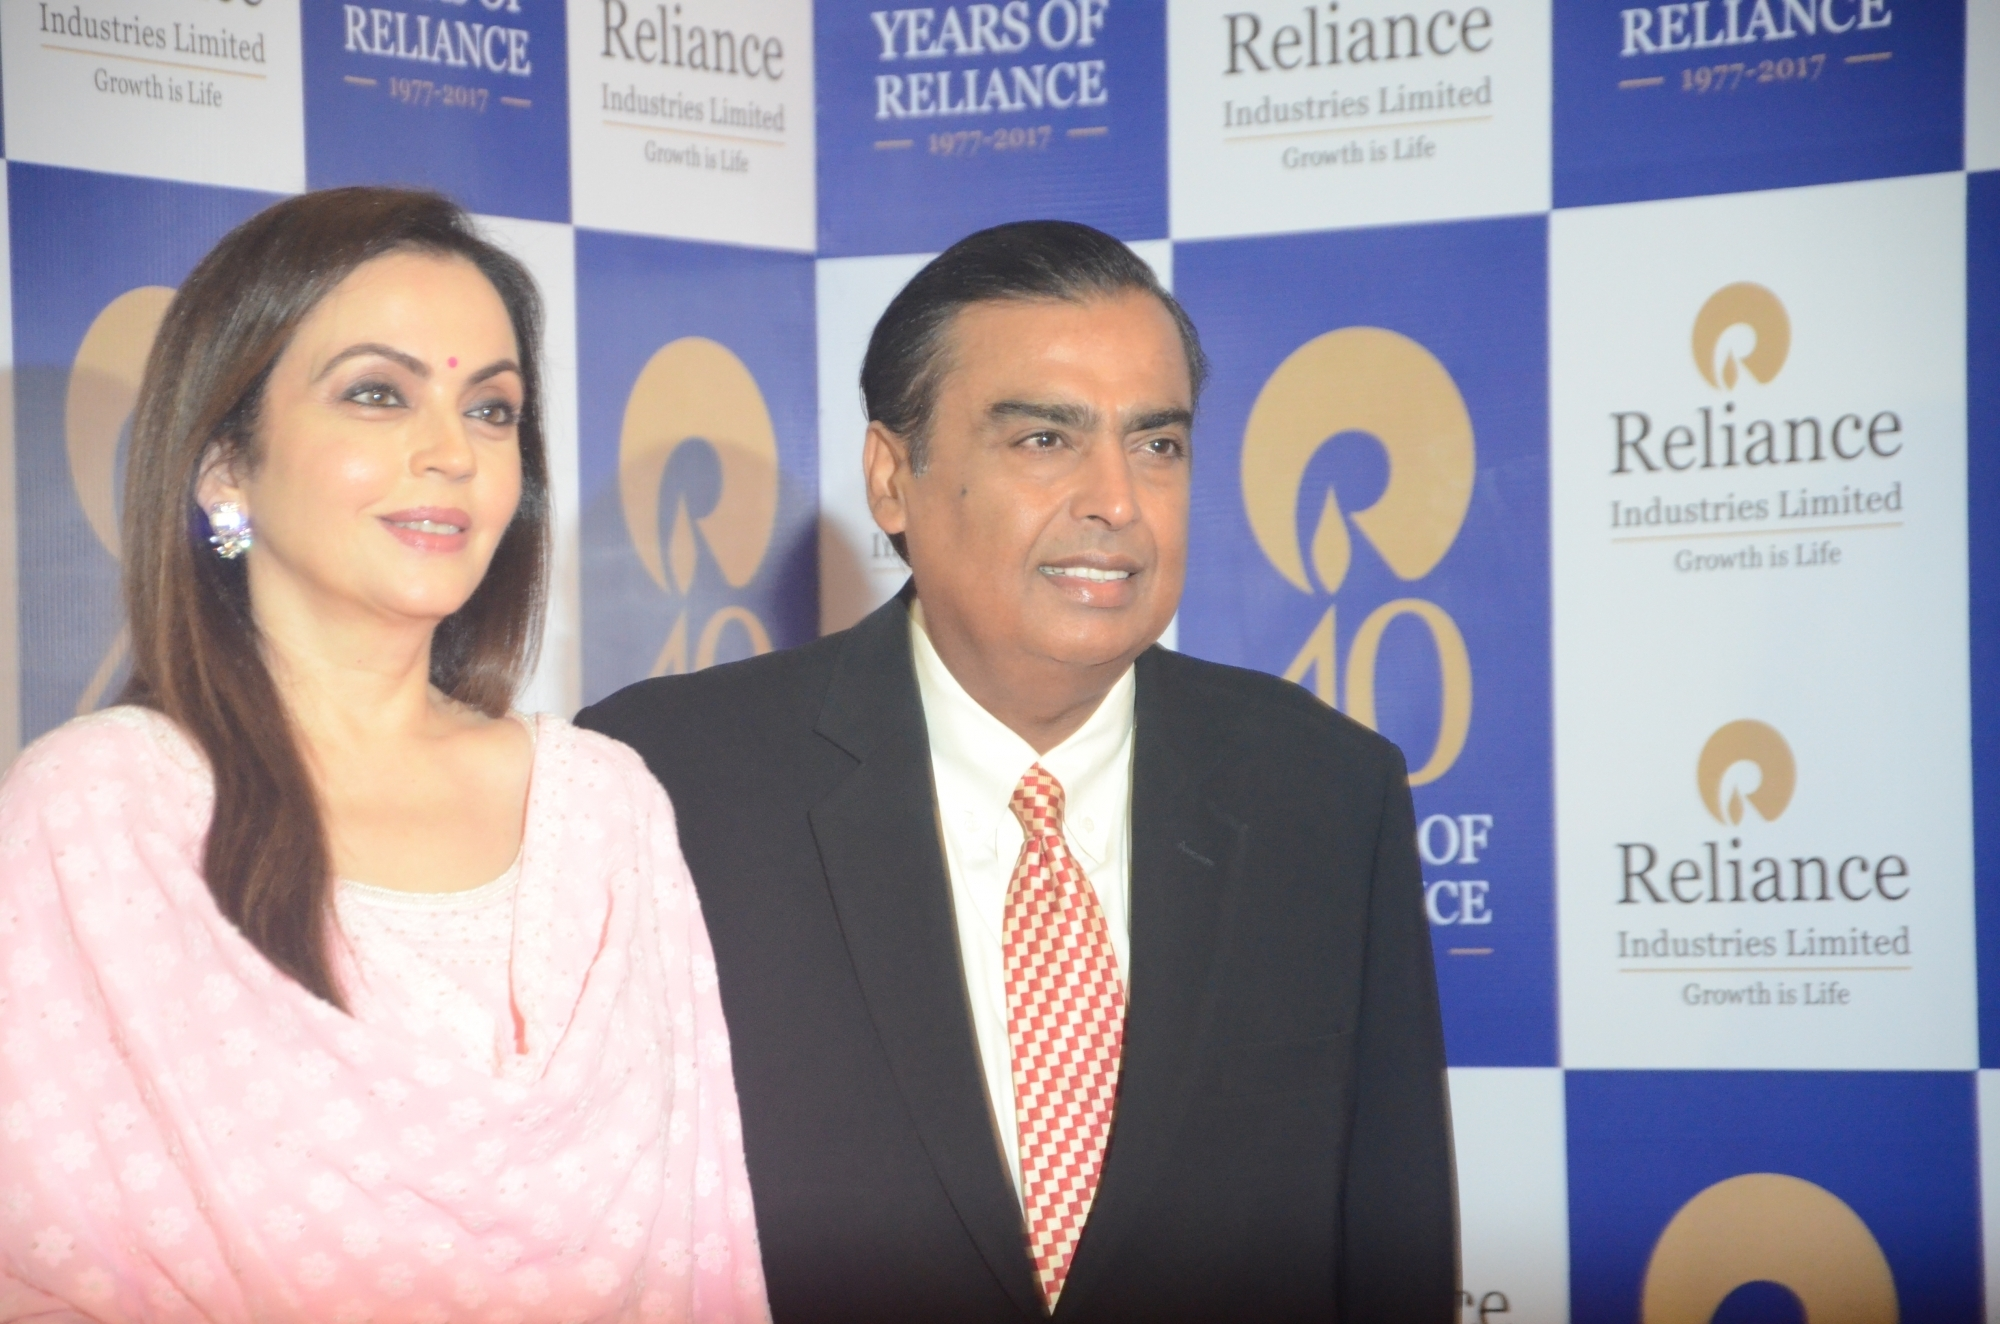 Free phones to shares: Christmas comes early for RIL stakeholders